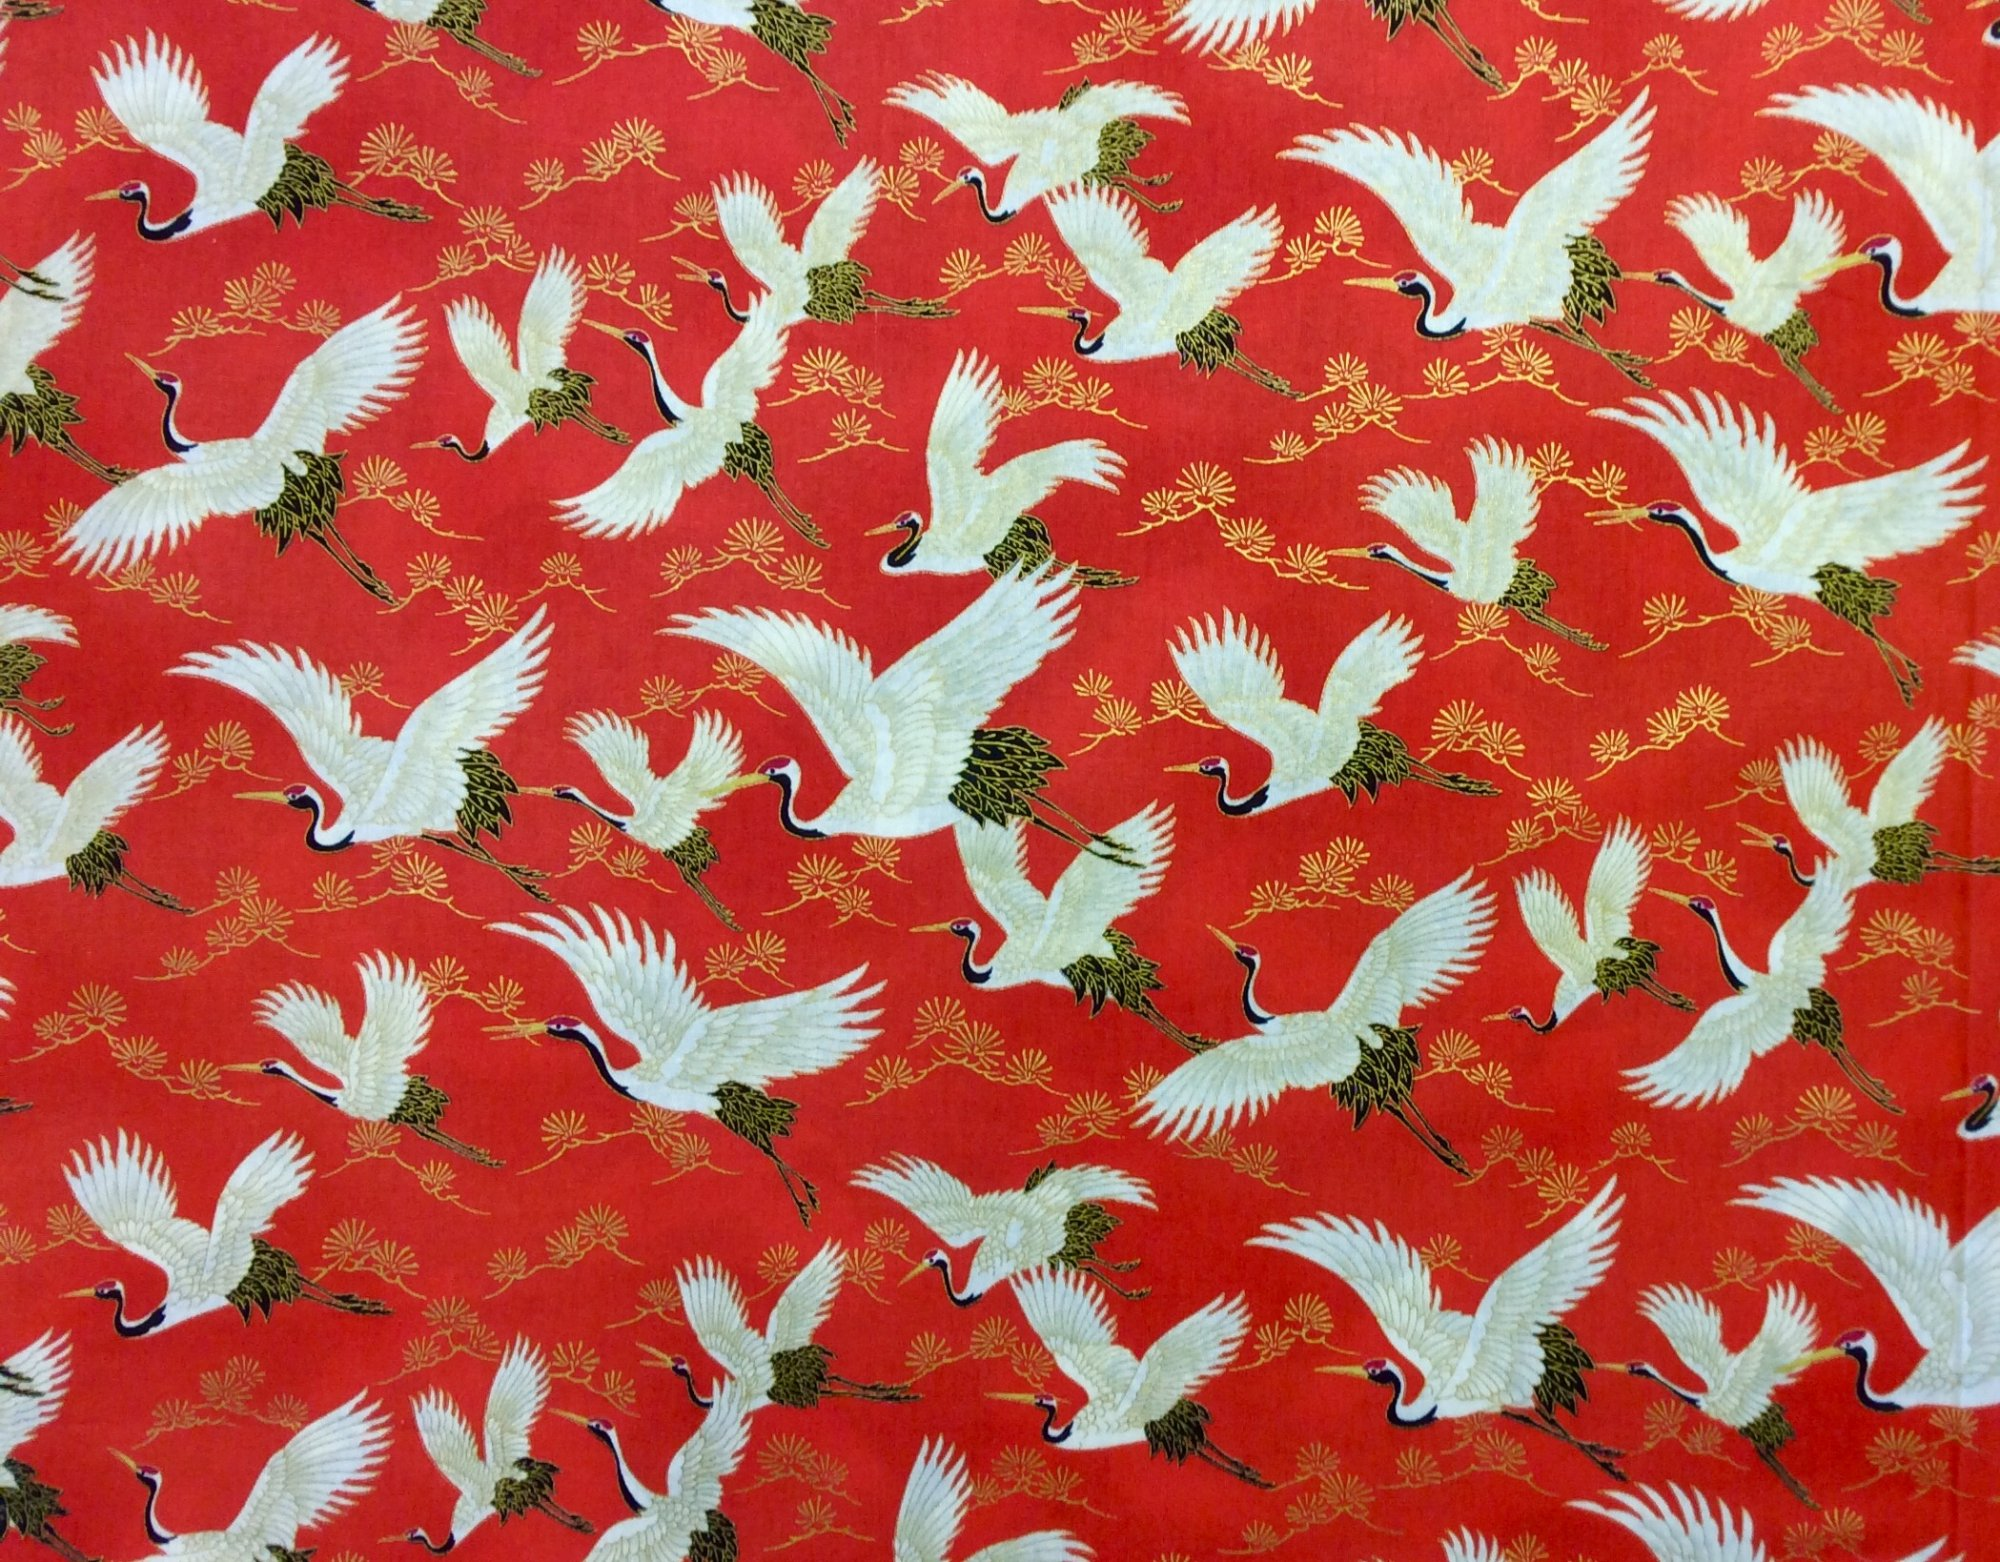 Japanese Asian Cranes Water Birds Obi Print Cotton Quilt Fabric NT89